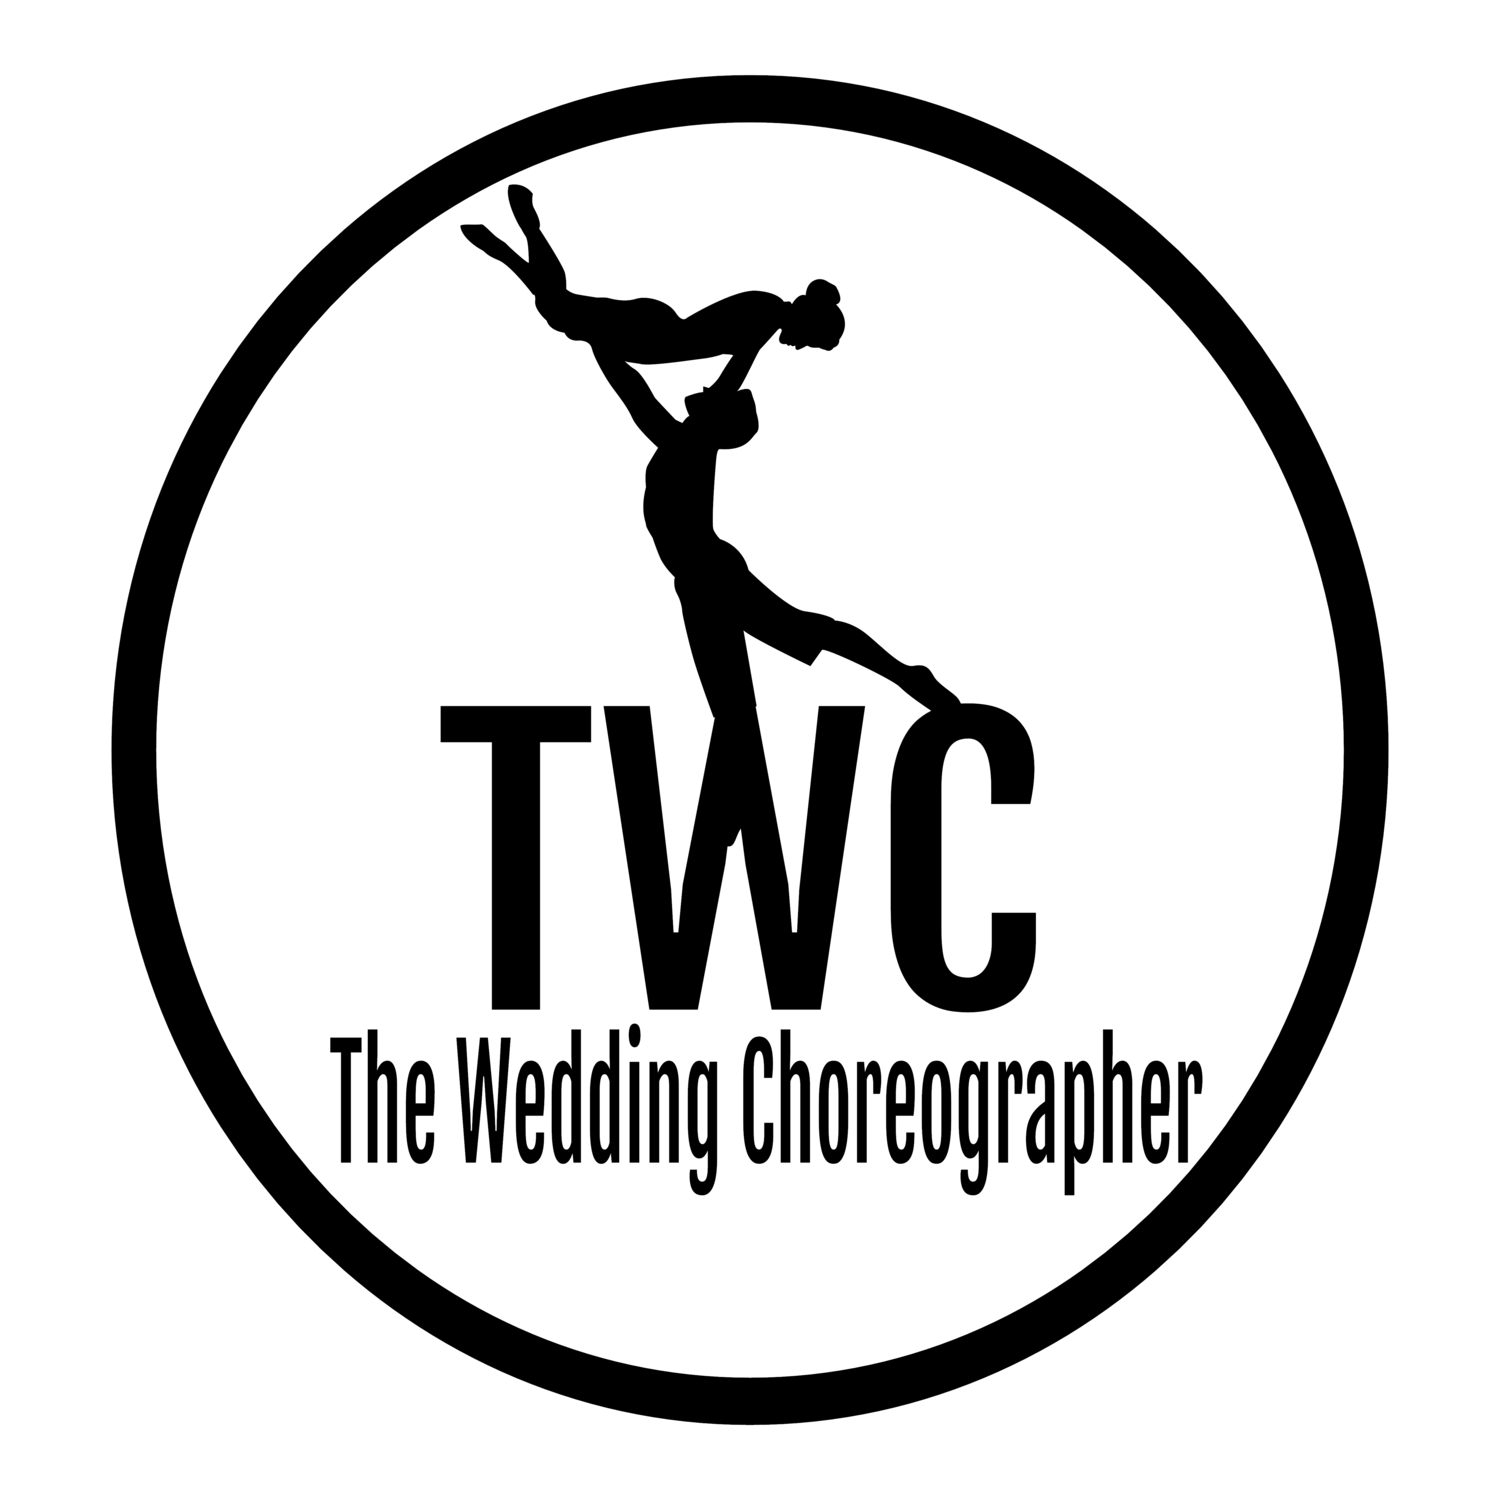 The Wedding Choreographer